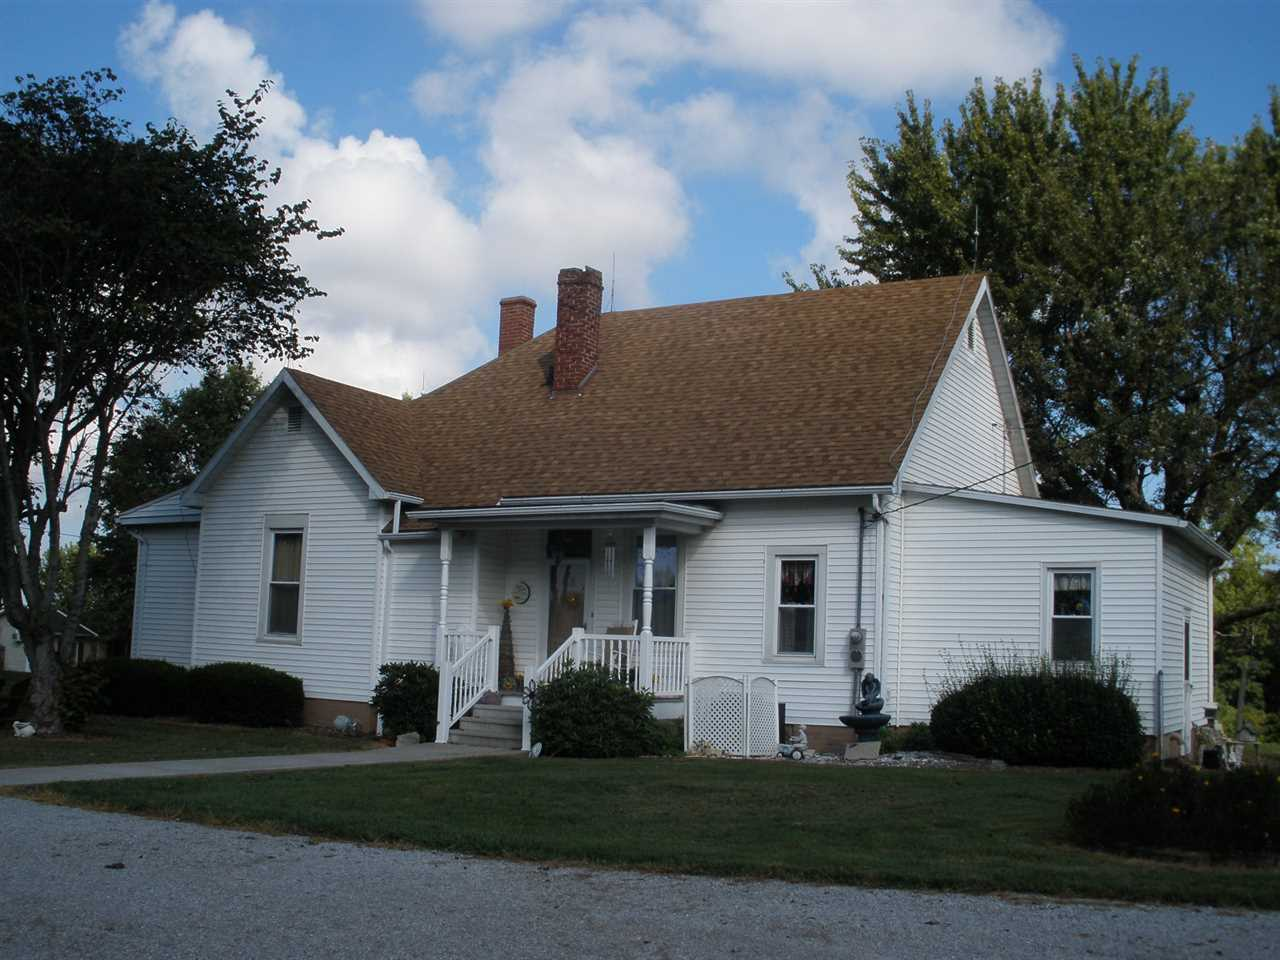 1368 S 100, Princeton, IN 47670